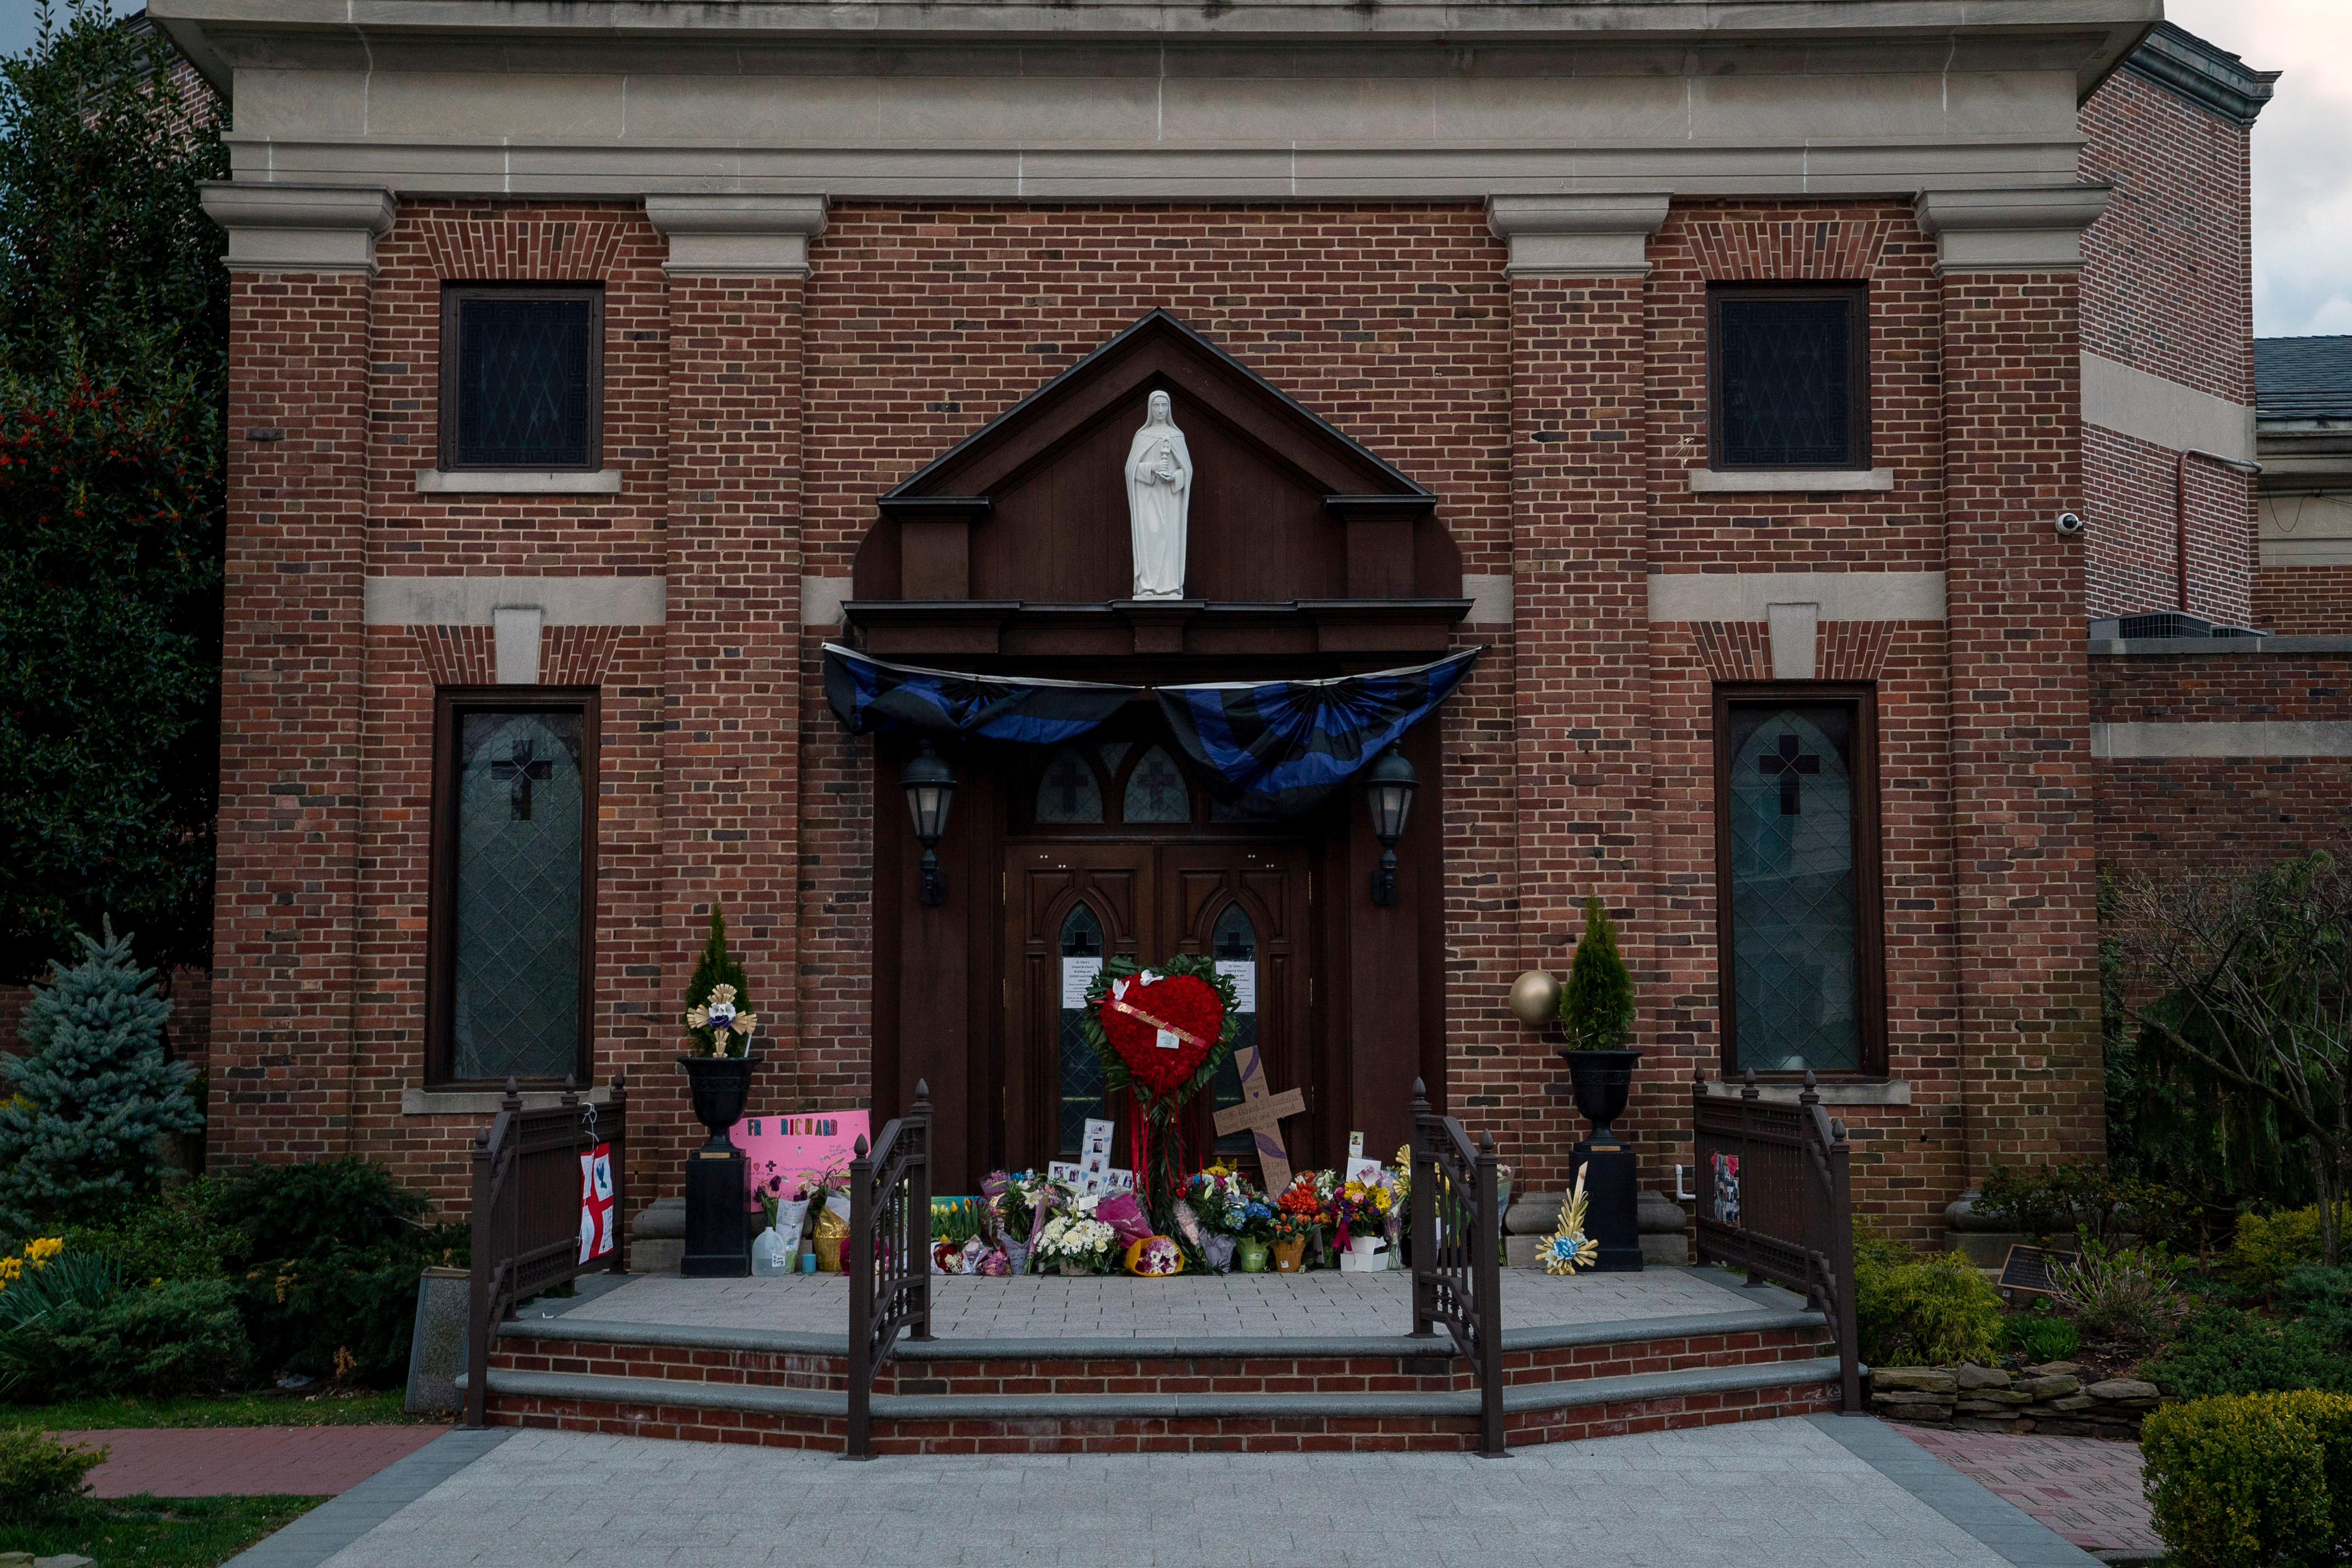 A memorial for Monsignor Richard Guastella, who died from Covid-19 on Thursday,  outside the doors of St. Clare Catholic Church in Staten Island, N.Y., on April 10, 2020.